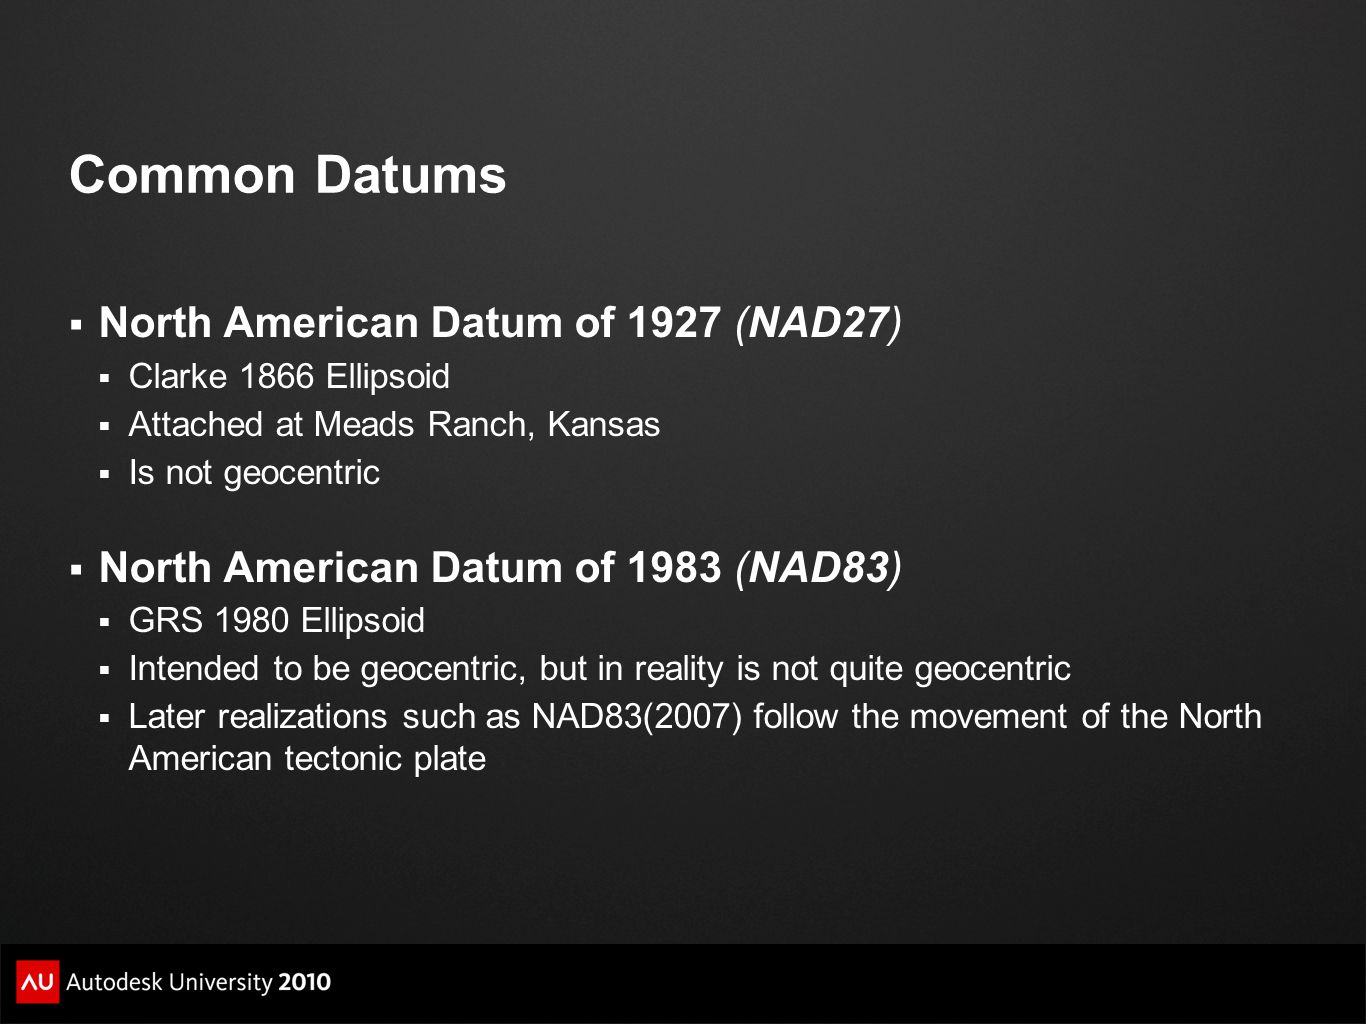 Common Datums North American Datum of 1927 (NAD27)